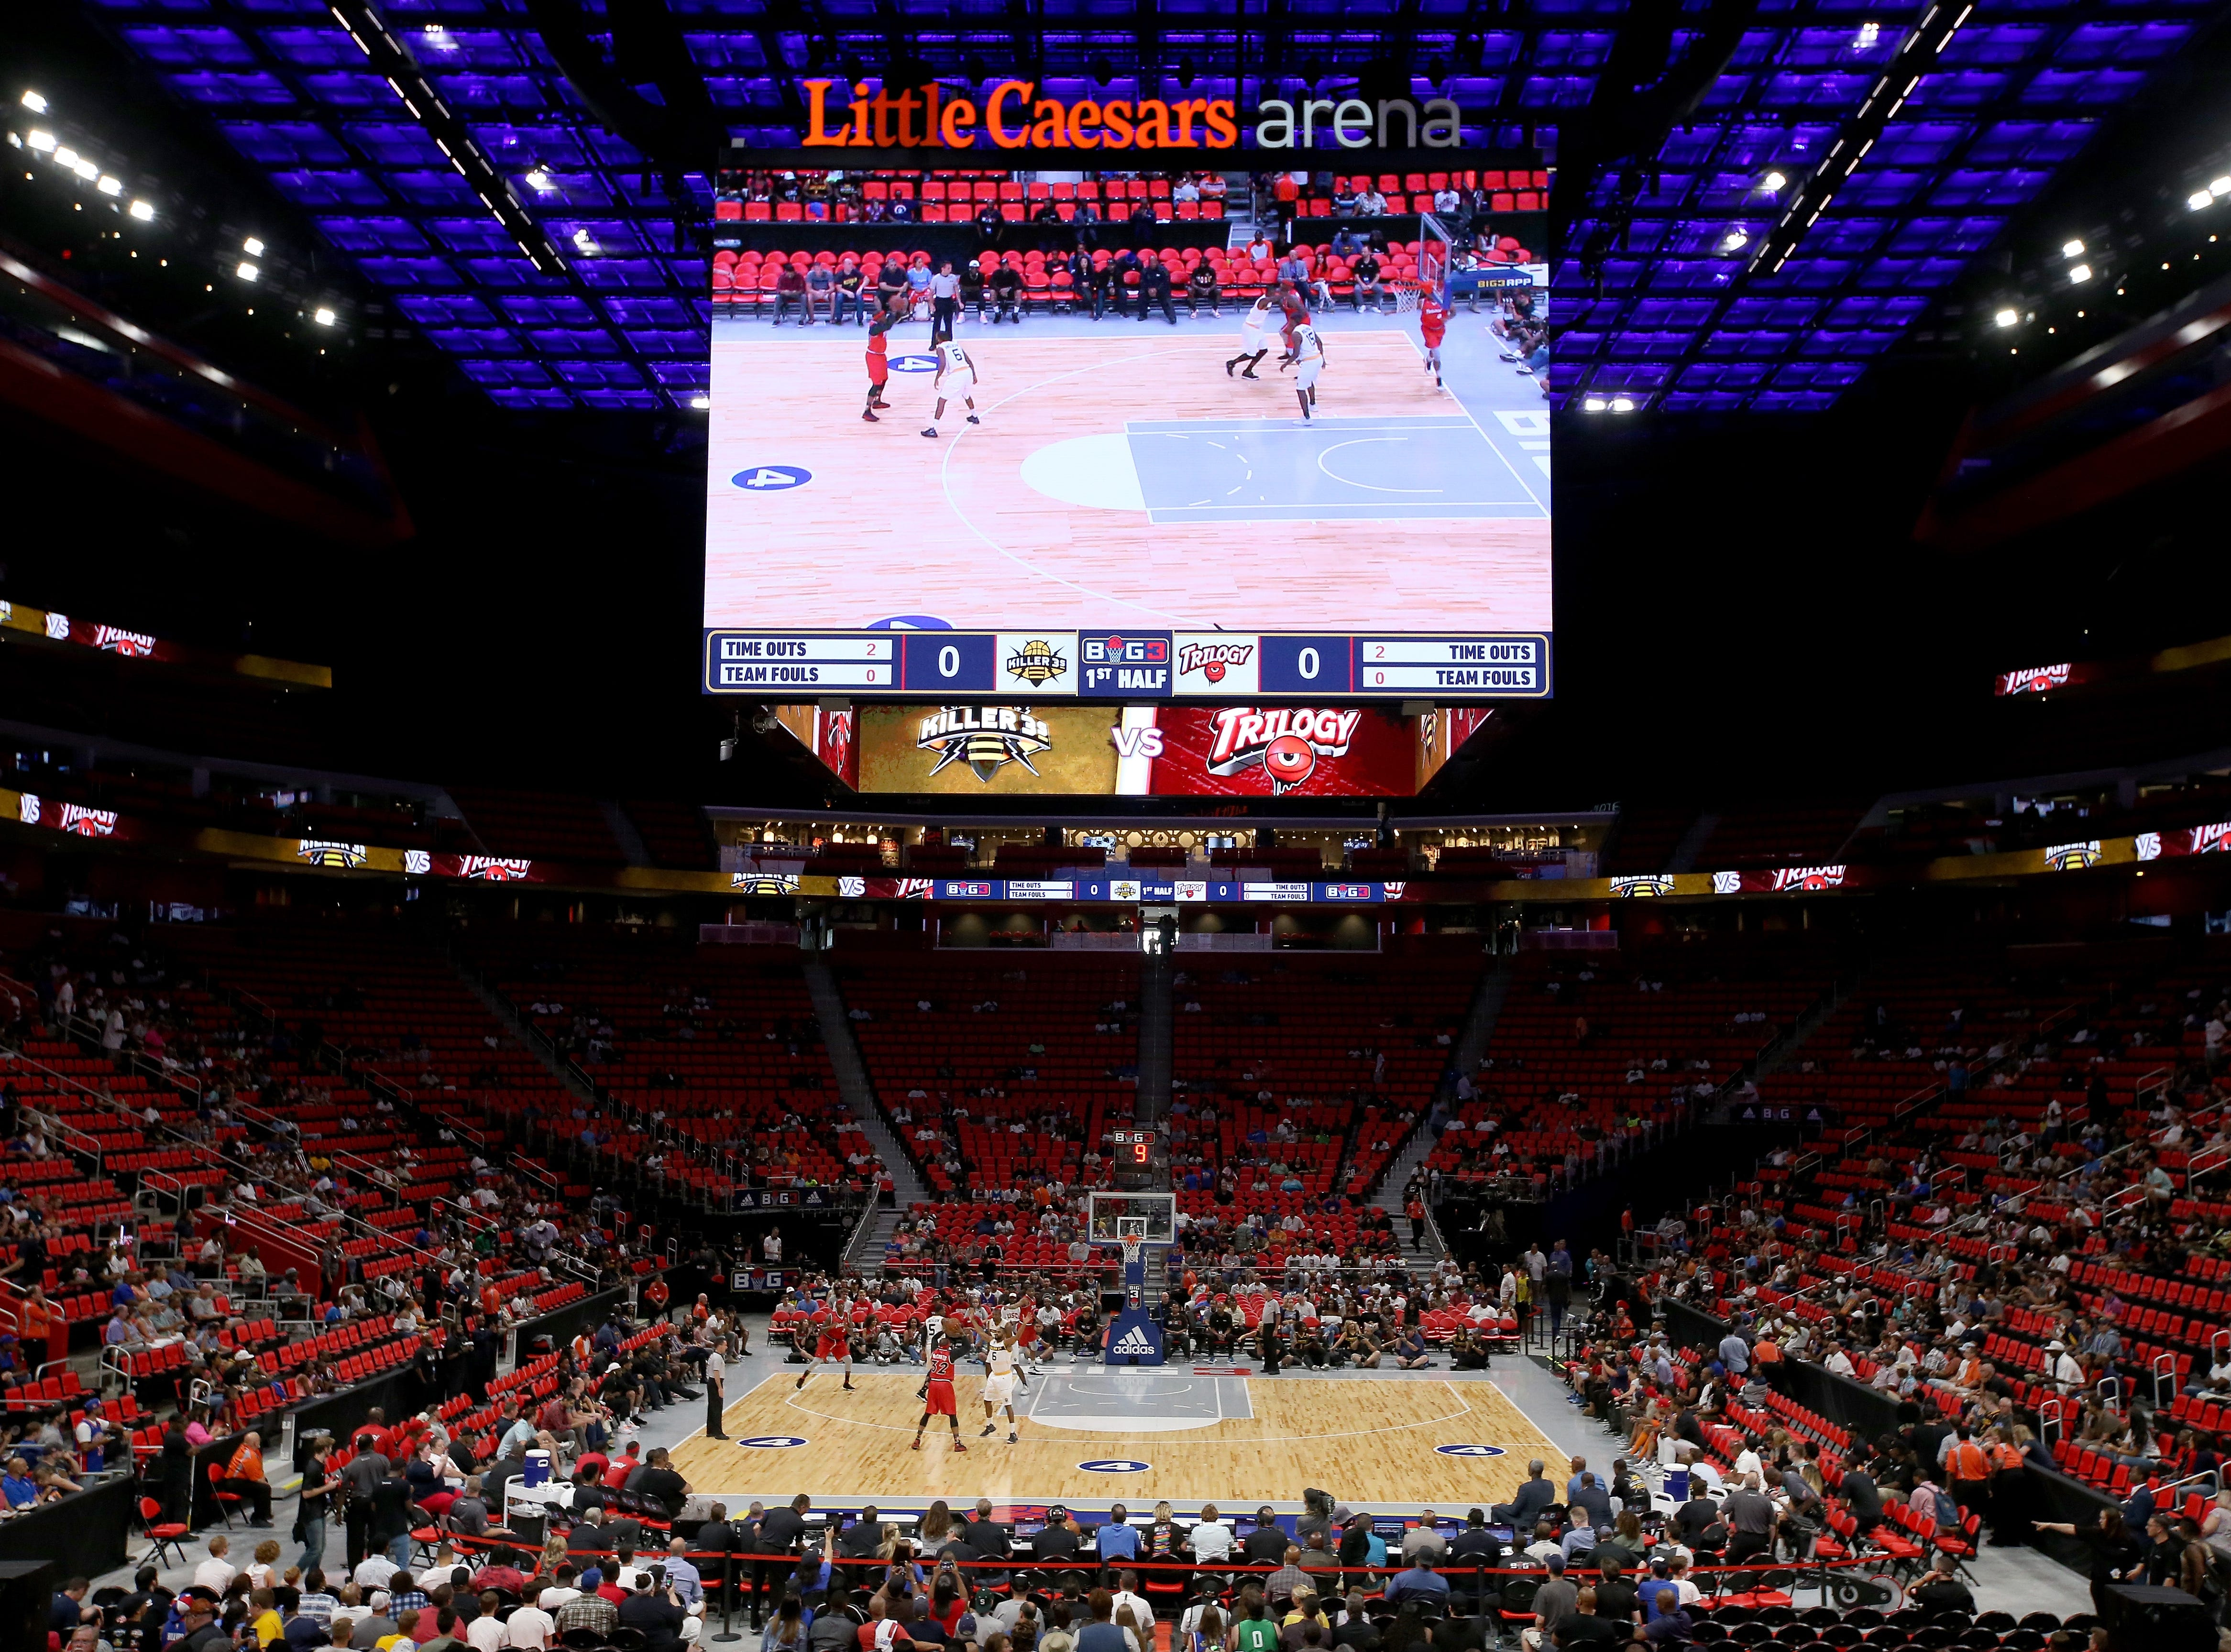 A general view during the game between Killer 3s and Trilogy during BIG3 - Week Four at Little Caesars Arena on July 13, 2018 in Detroit.